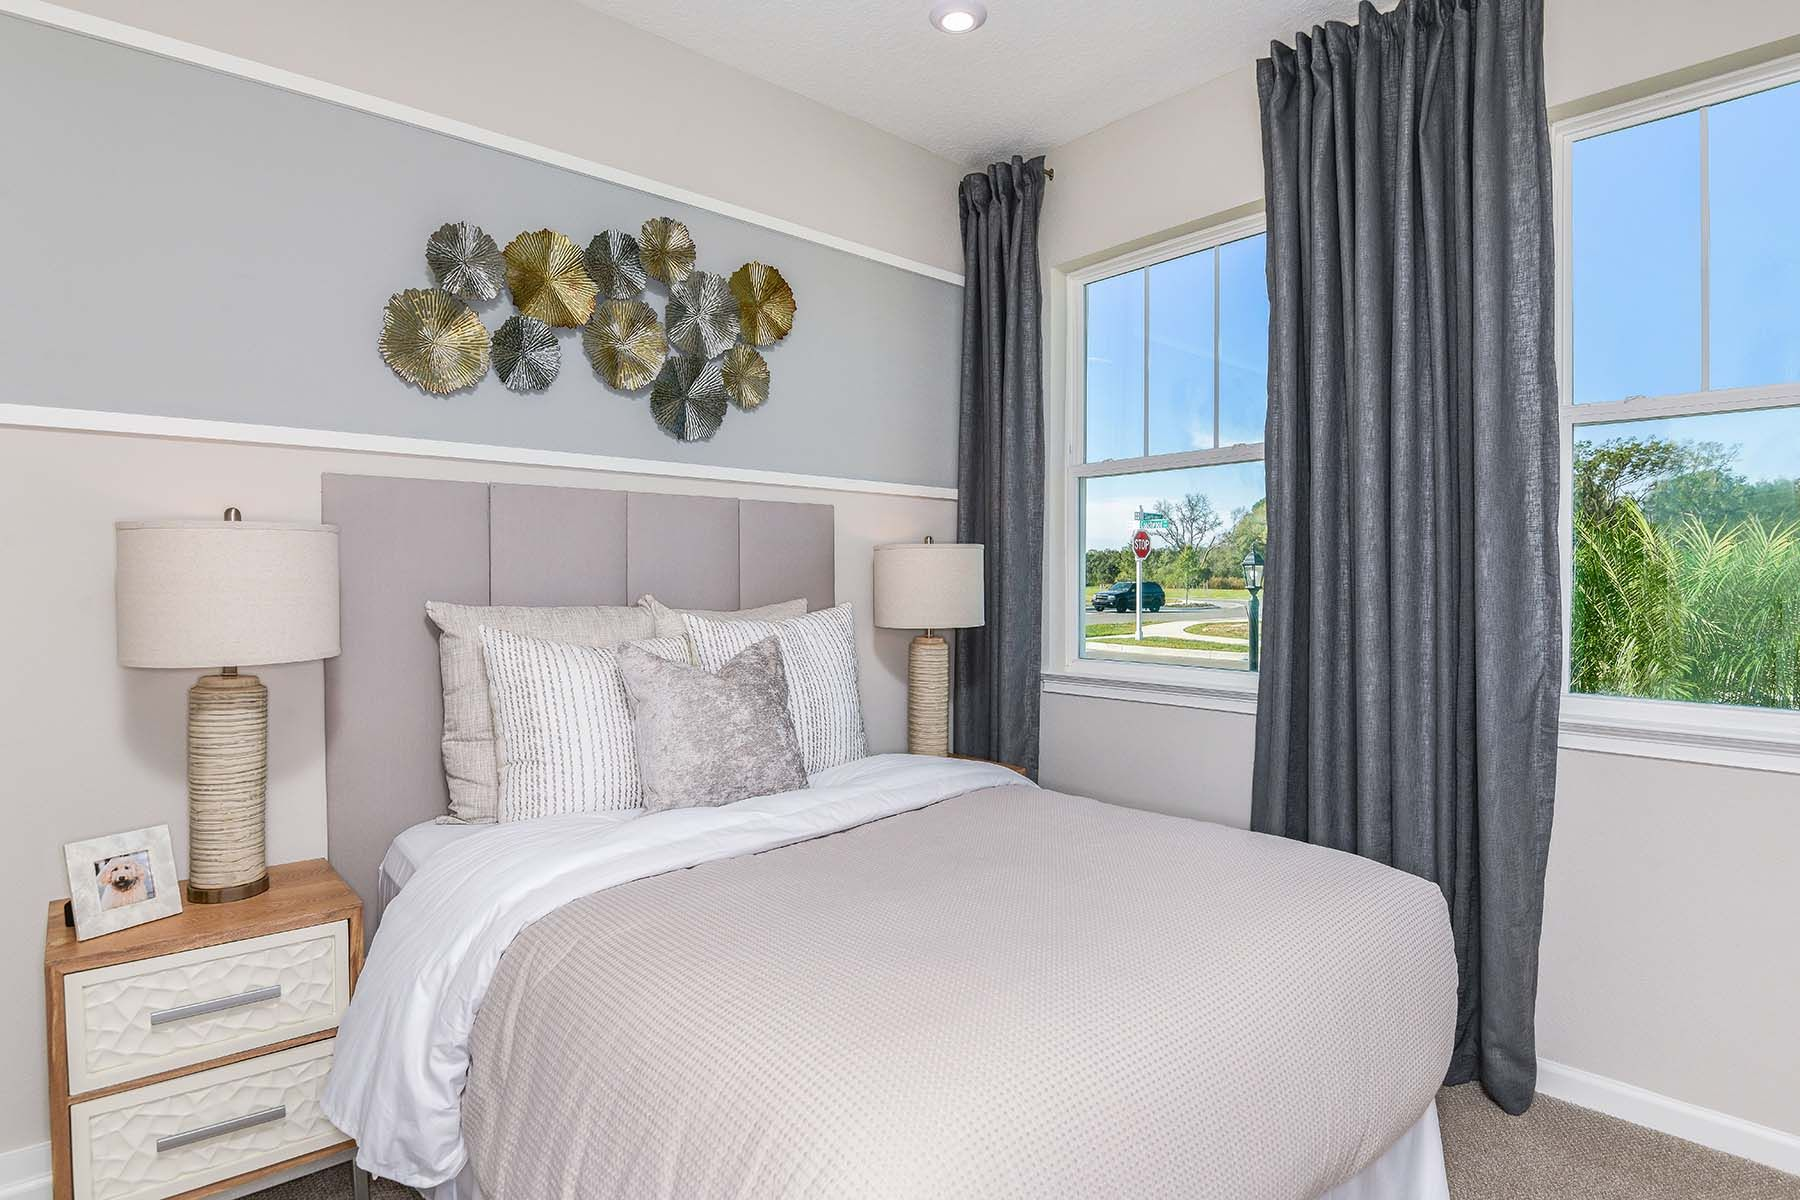 Bedroom featured in the Driftwood II End By Mattamy Homes in Sarasota-Bradenton, FL